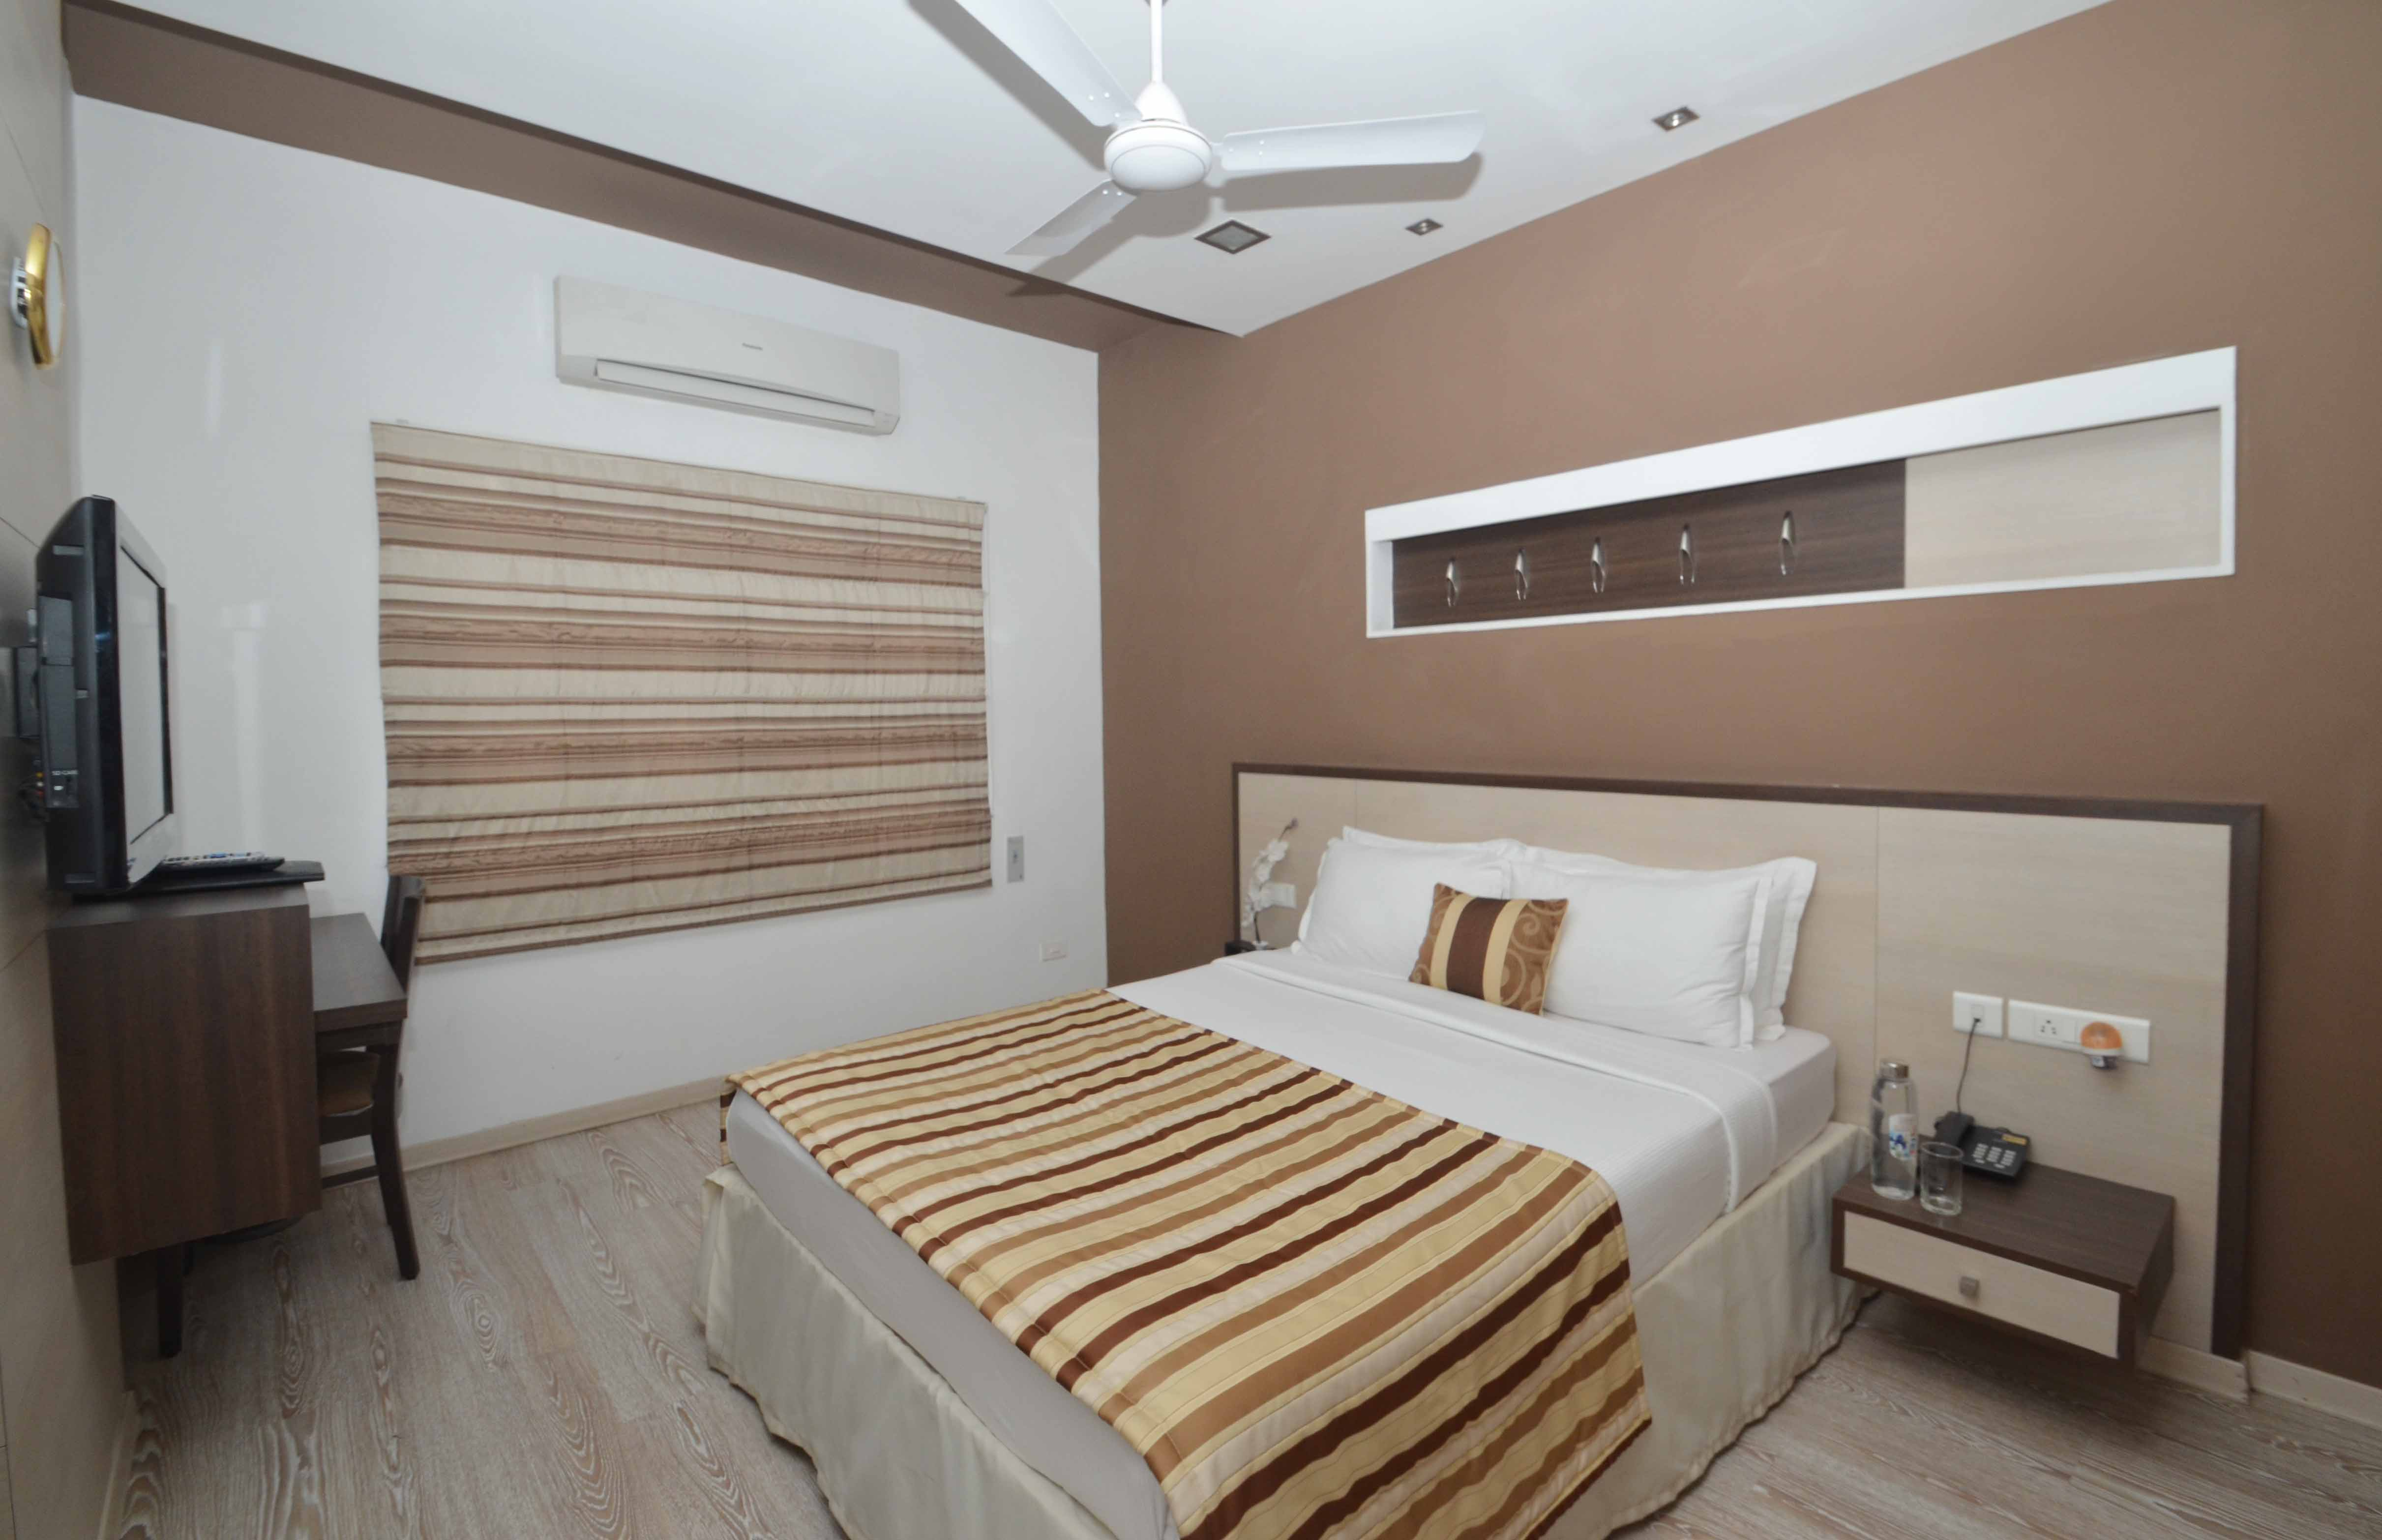 Service apartments in block 2 t nagar chennai corporate stay for Single bedroom flats for rent in chennai